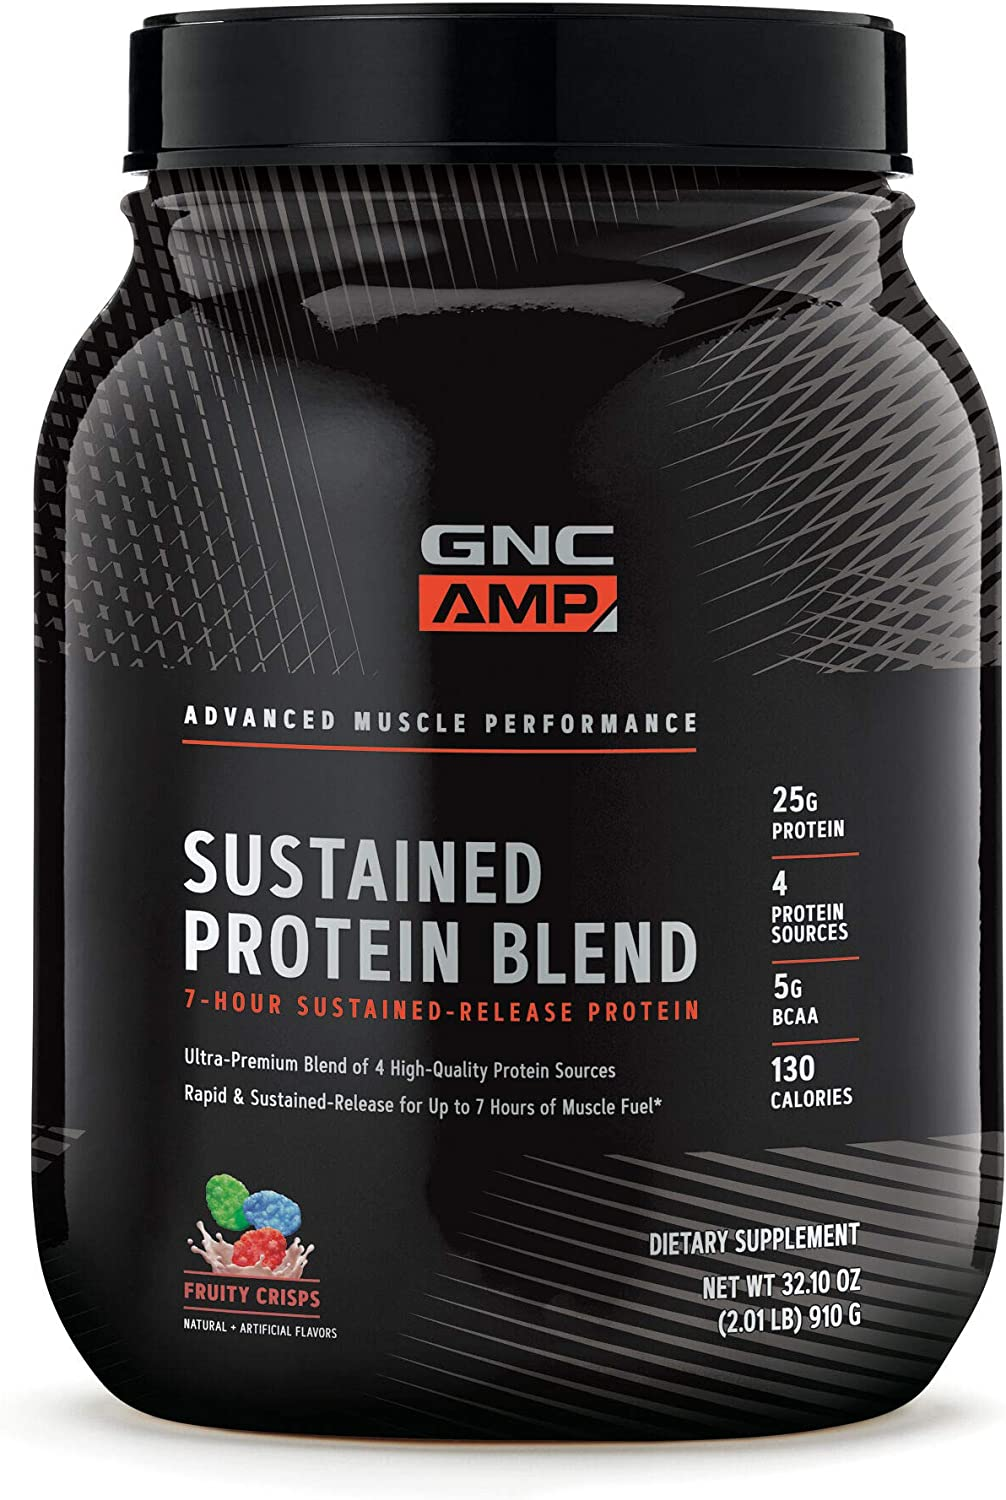 GNC AMP Sustained Protein Blend – Fruity Crisps, 2.04 lbs, High-Quality Protein Powder for Muscle Fuel